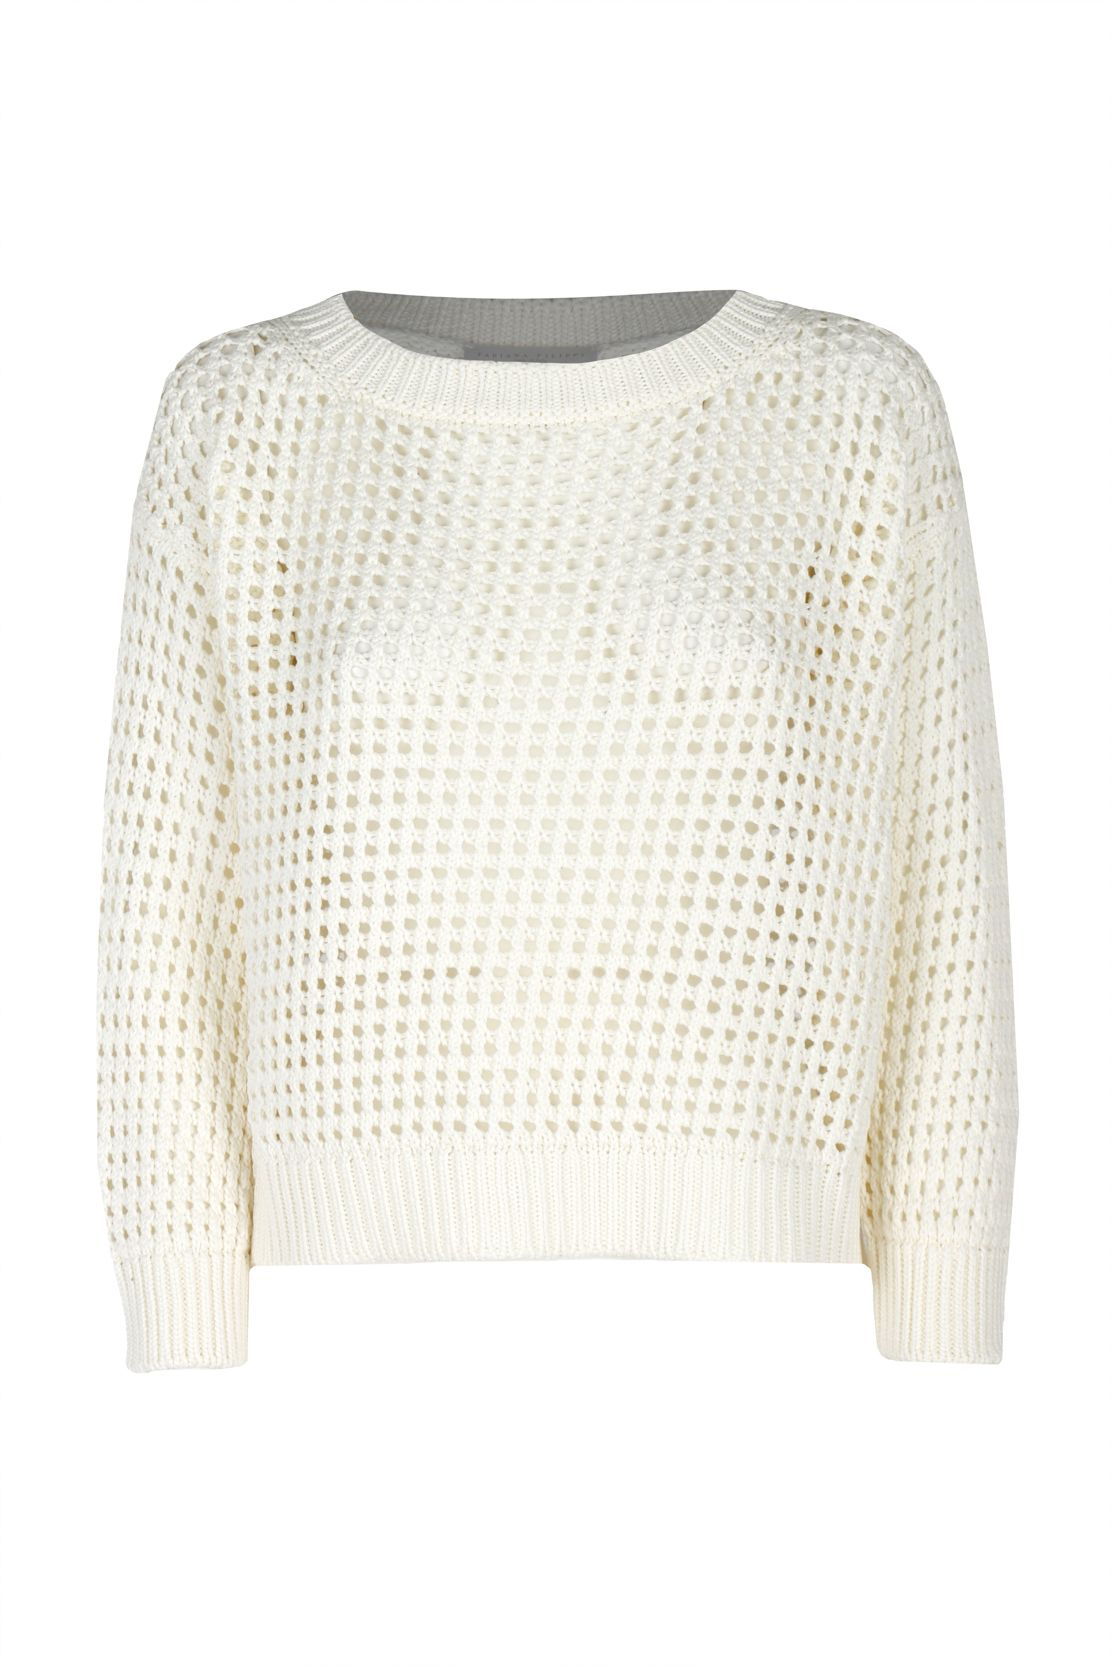 Fabiana Filippi FABIANA FILIPPI WOMEN'S WHITE COTTON SWEATER